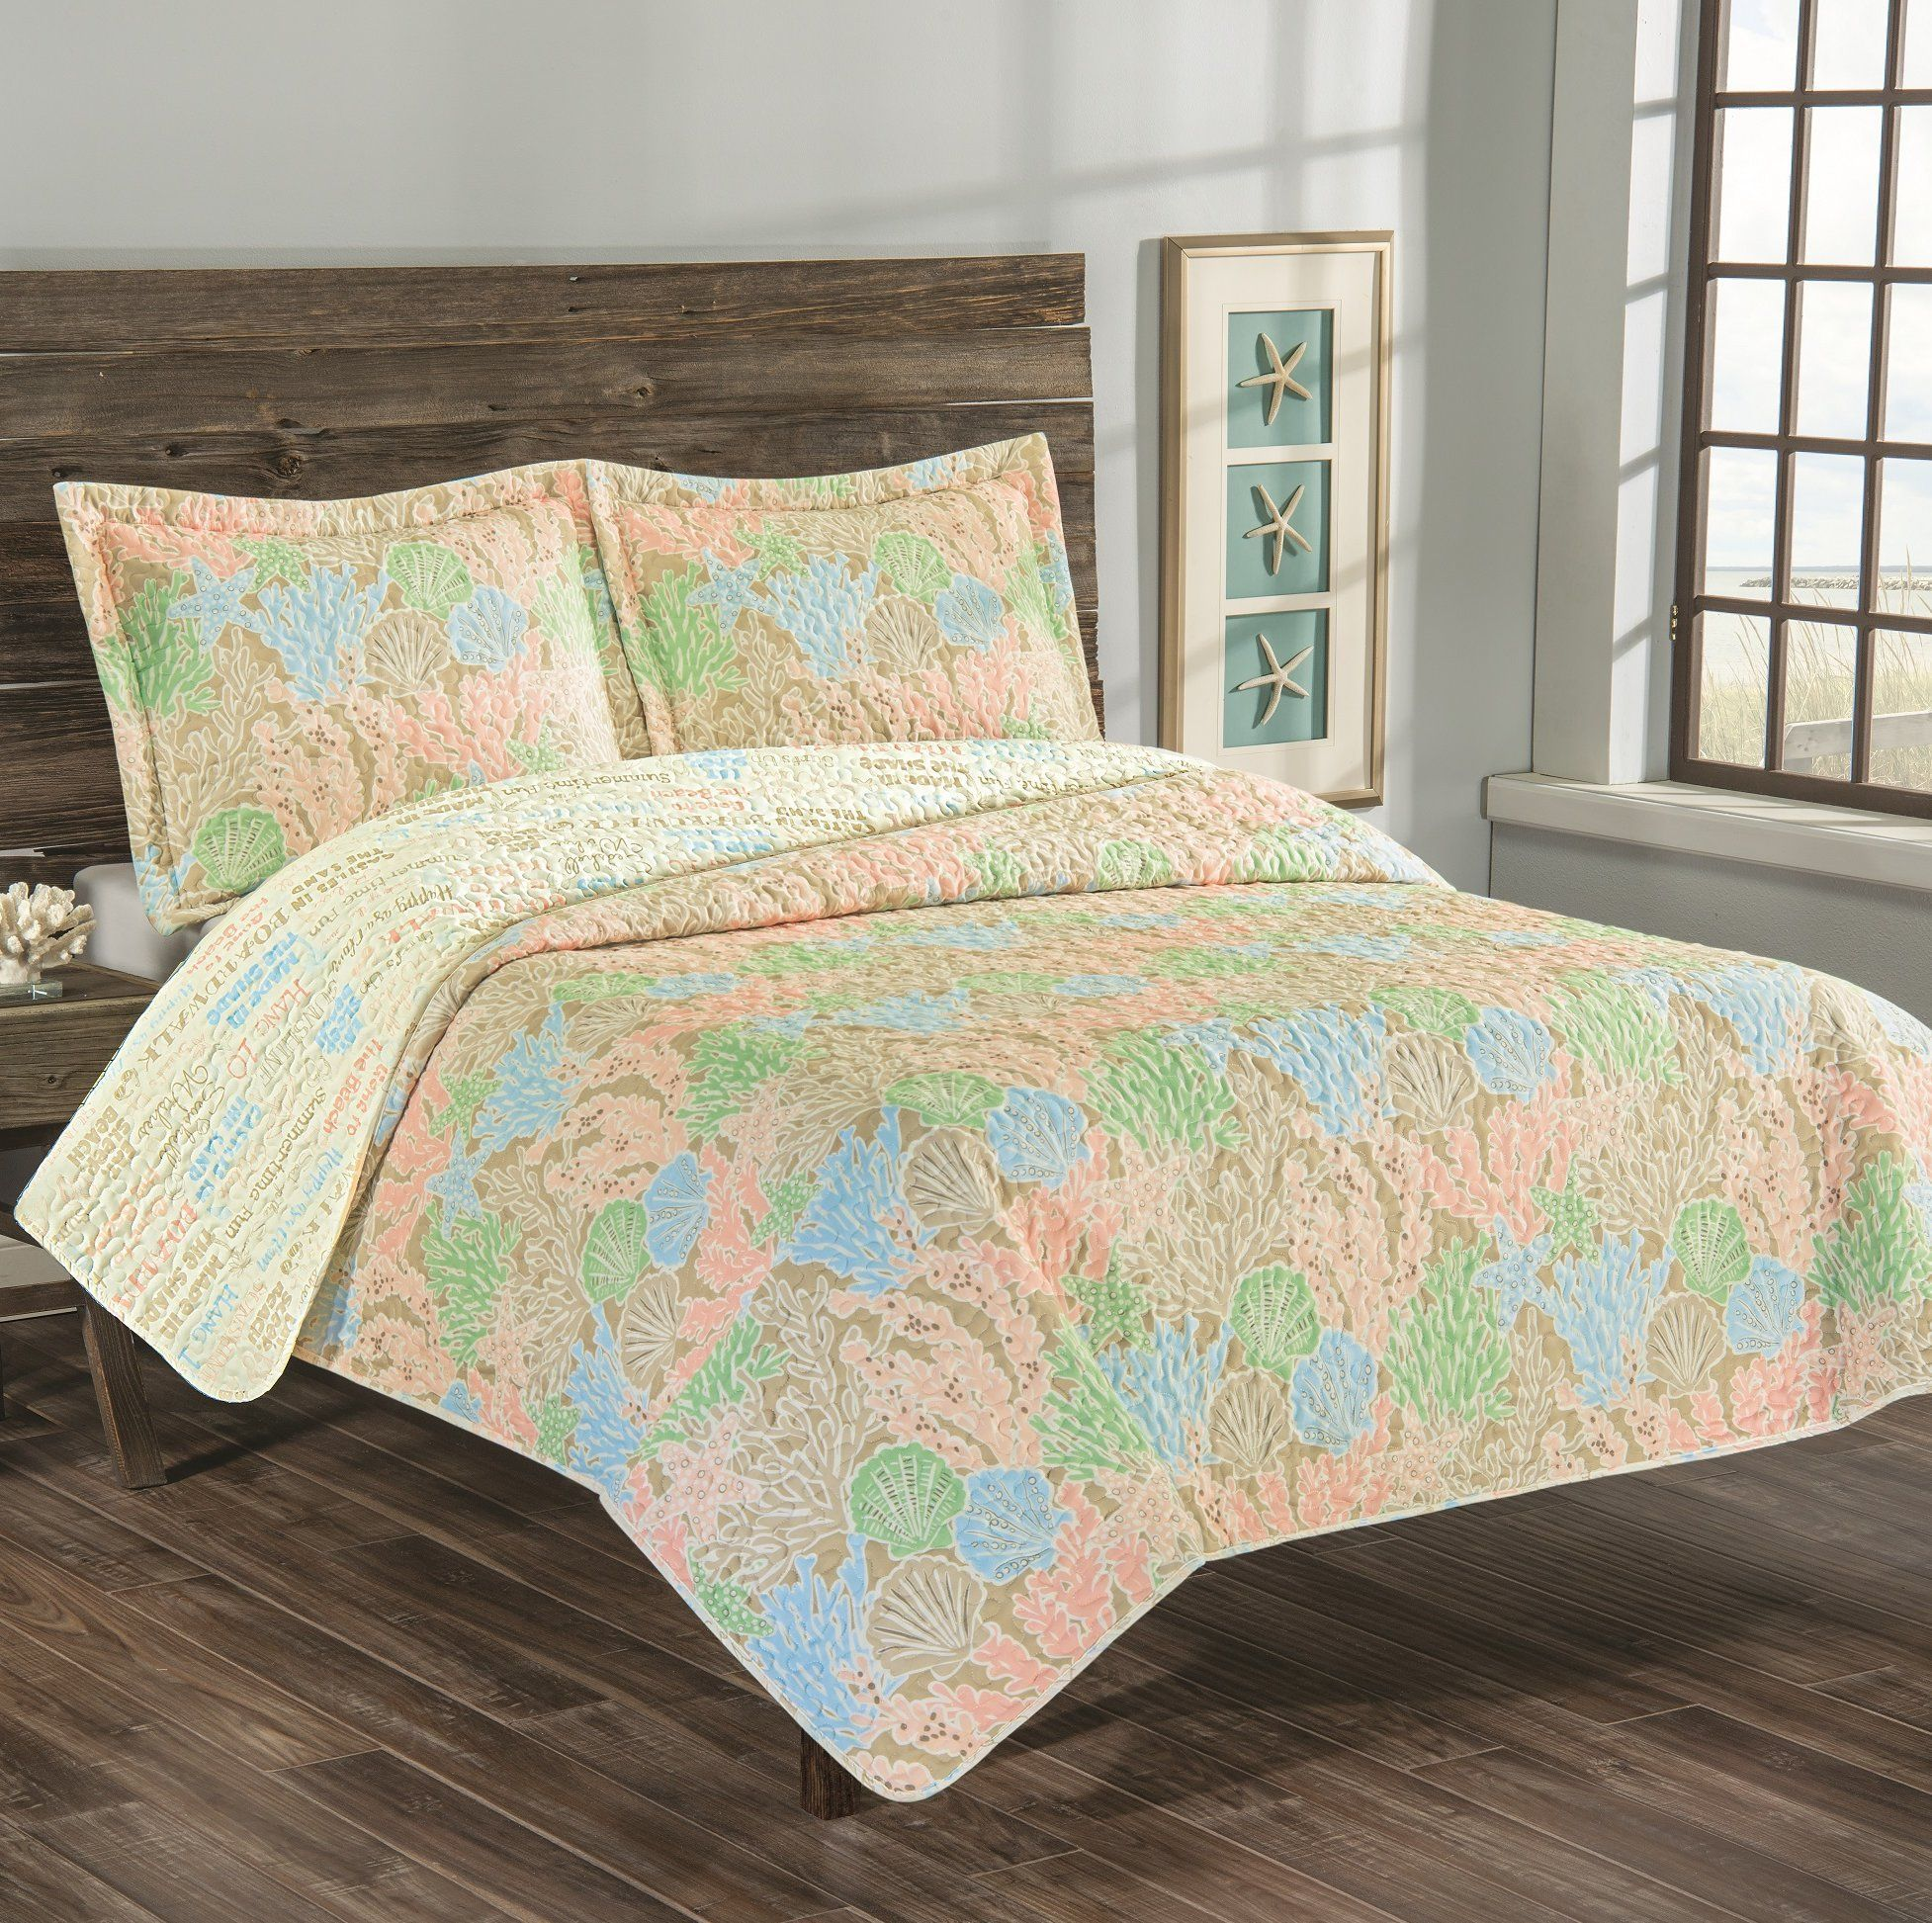 200 Coastal Bedding Sets And Beach Bedding Sets For 2020